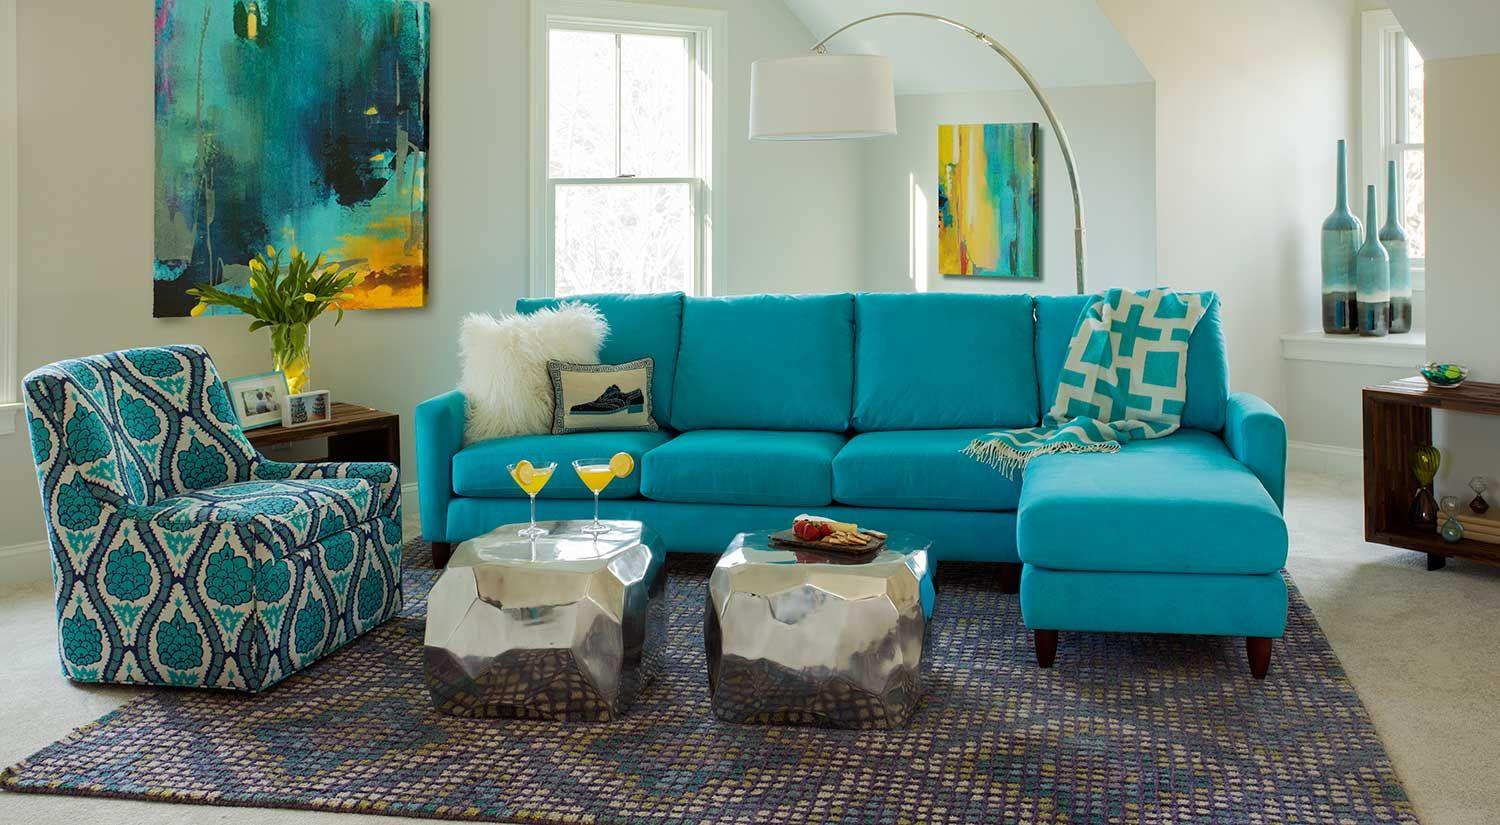 Nice Teal Blue Sectional Sofa Awesome Teal Blue Sectional Sofa